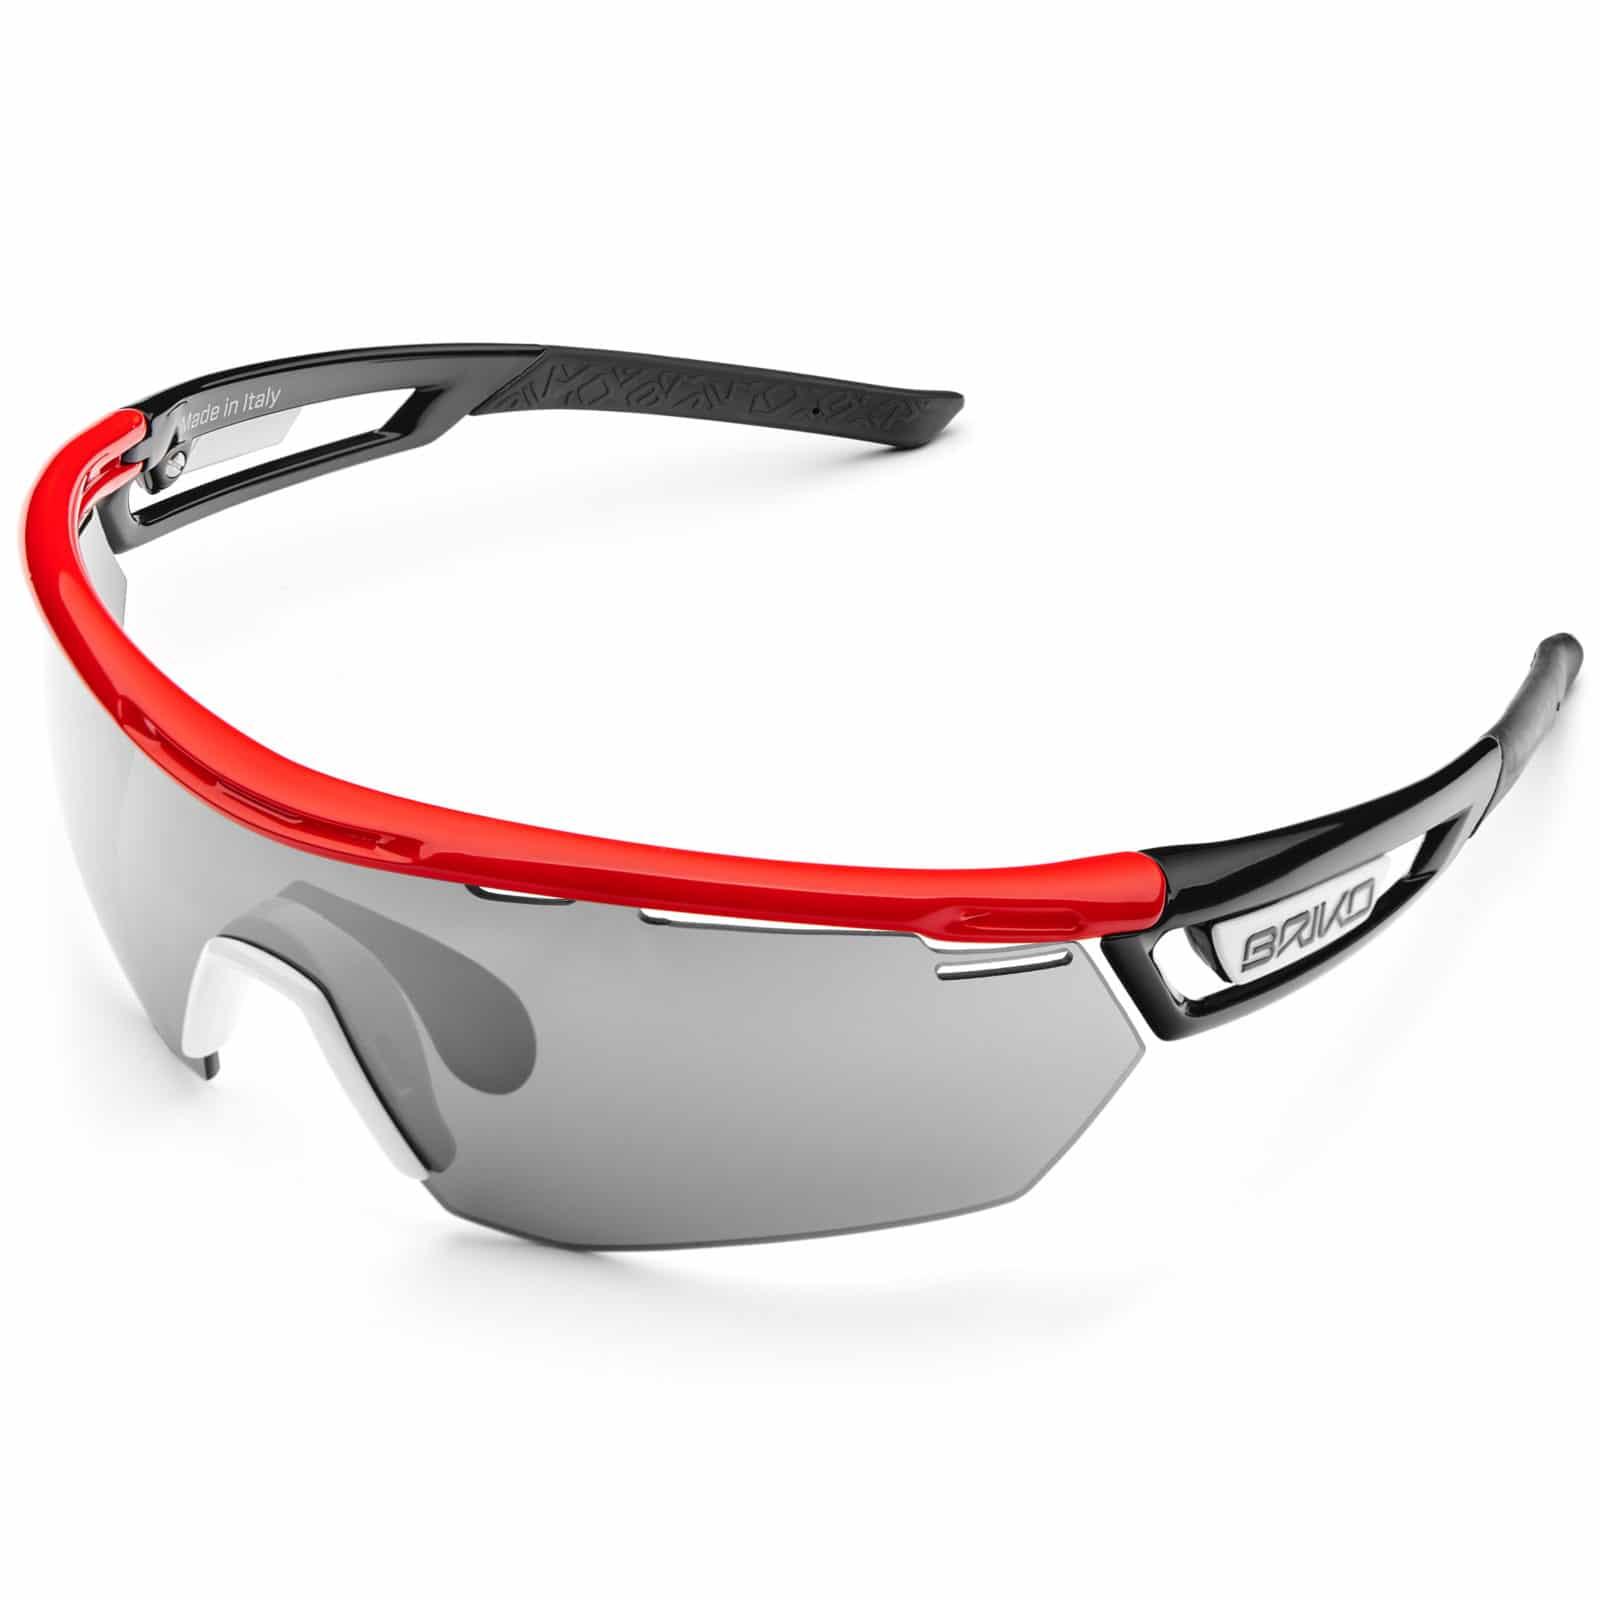 Cyclope –2 Lenses Red/Blk/Wht